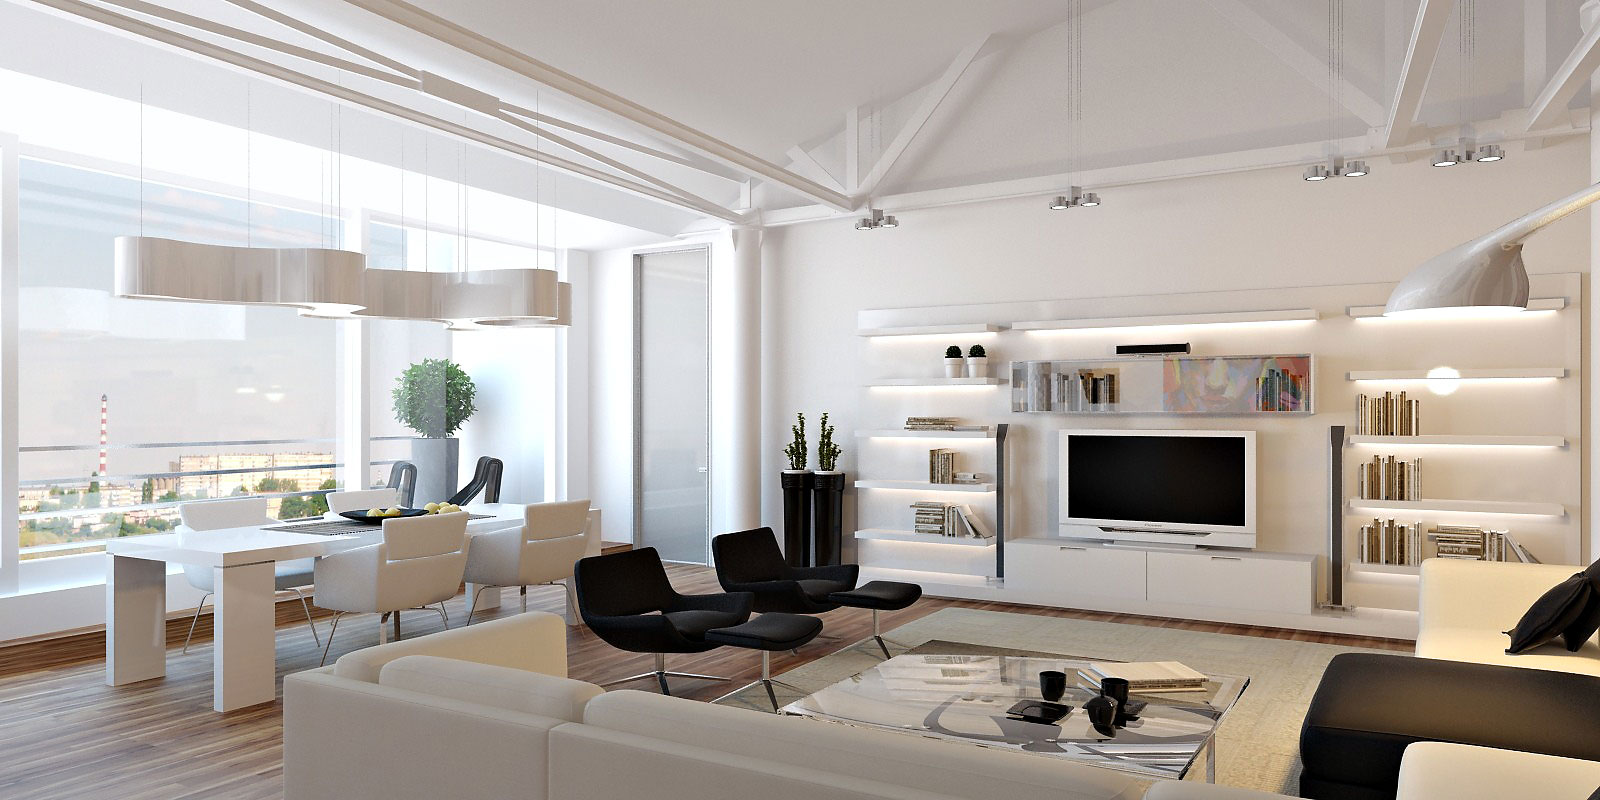 Modern Loft Interior Design The Pros And Cons Of Living In A Loft